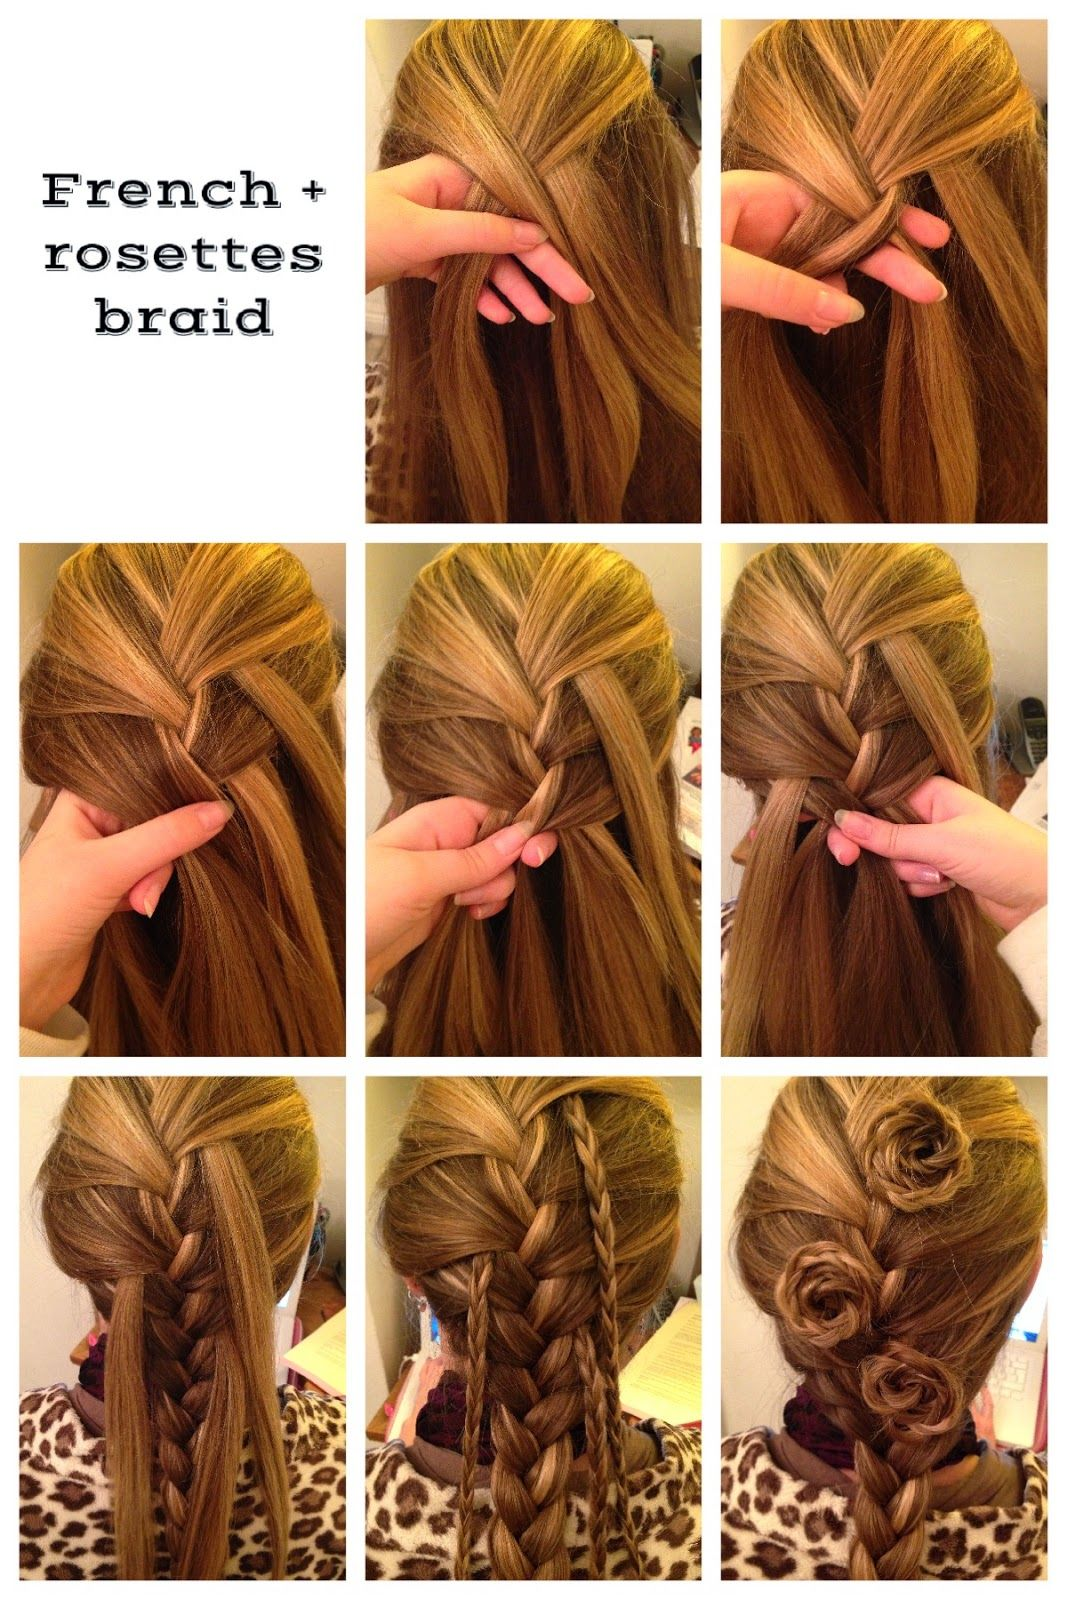 Hair Styles By Liberty: French Braid + Rosettes